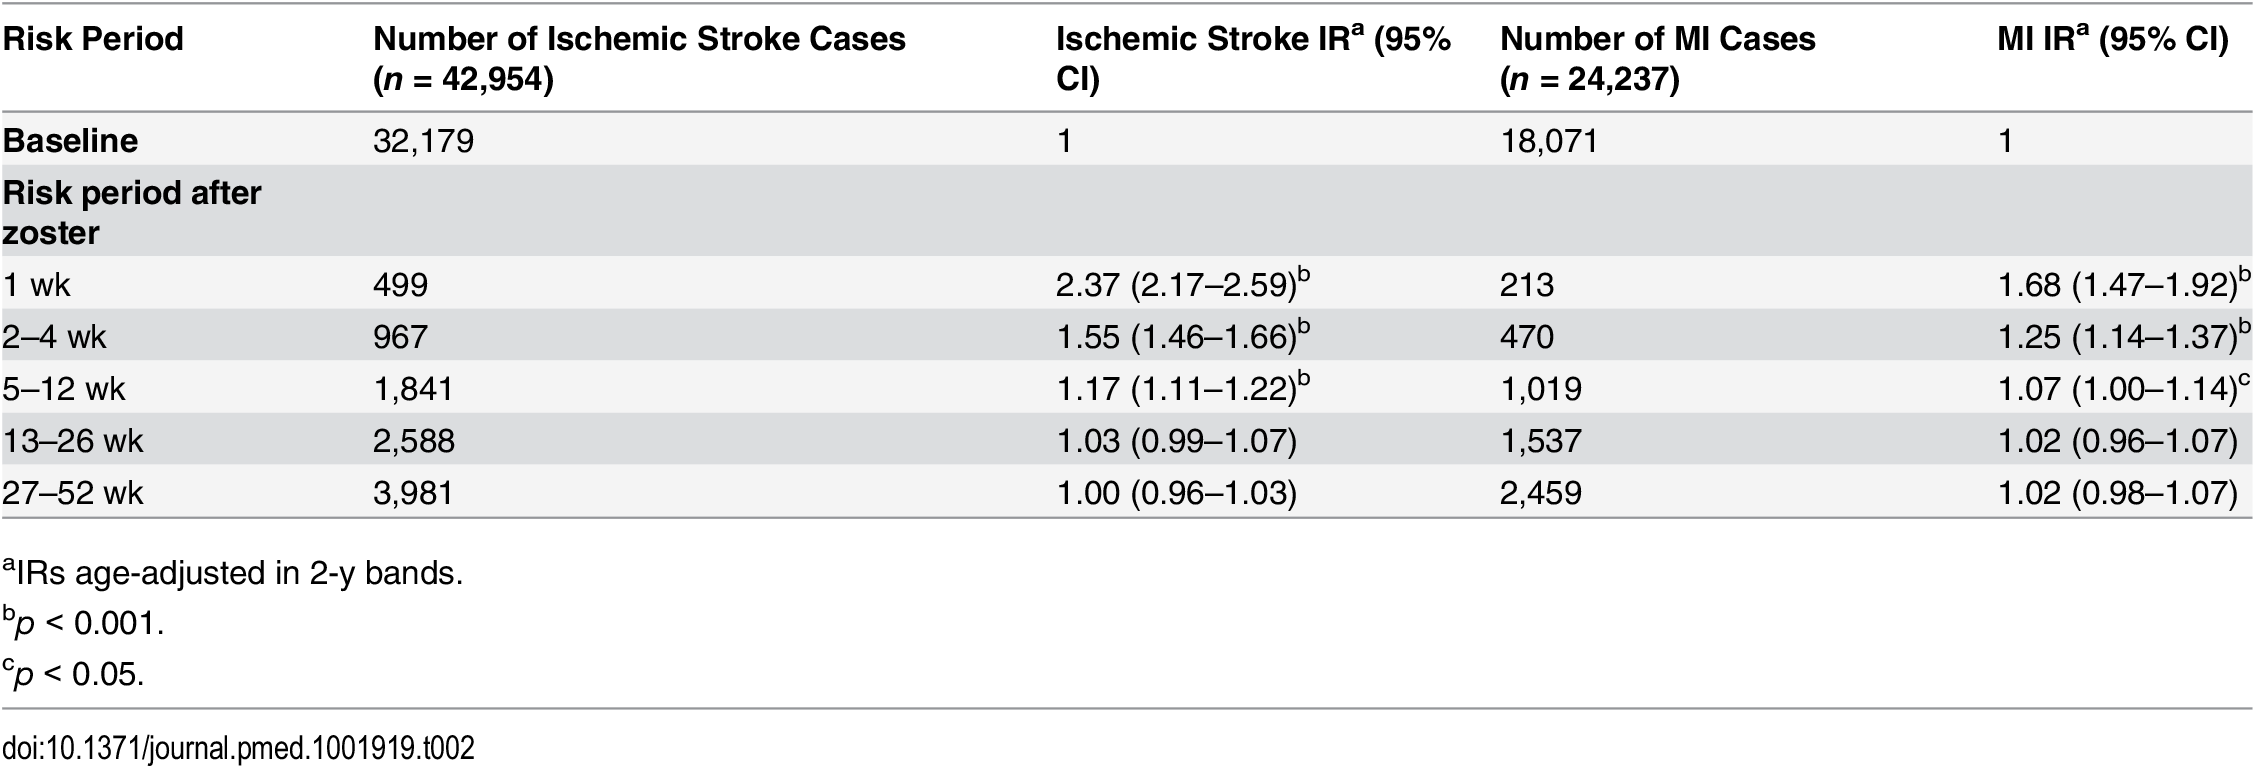 Primary analysis: age-adjusted incidence ratios for ischemic stroke and myocardial infarction in risk periods after zoster diagnosis.